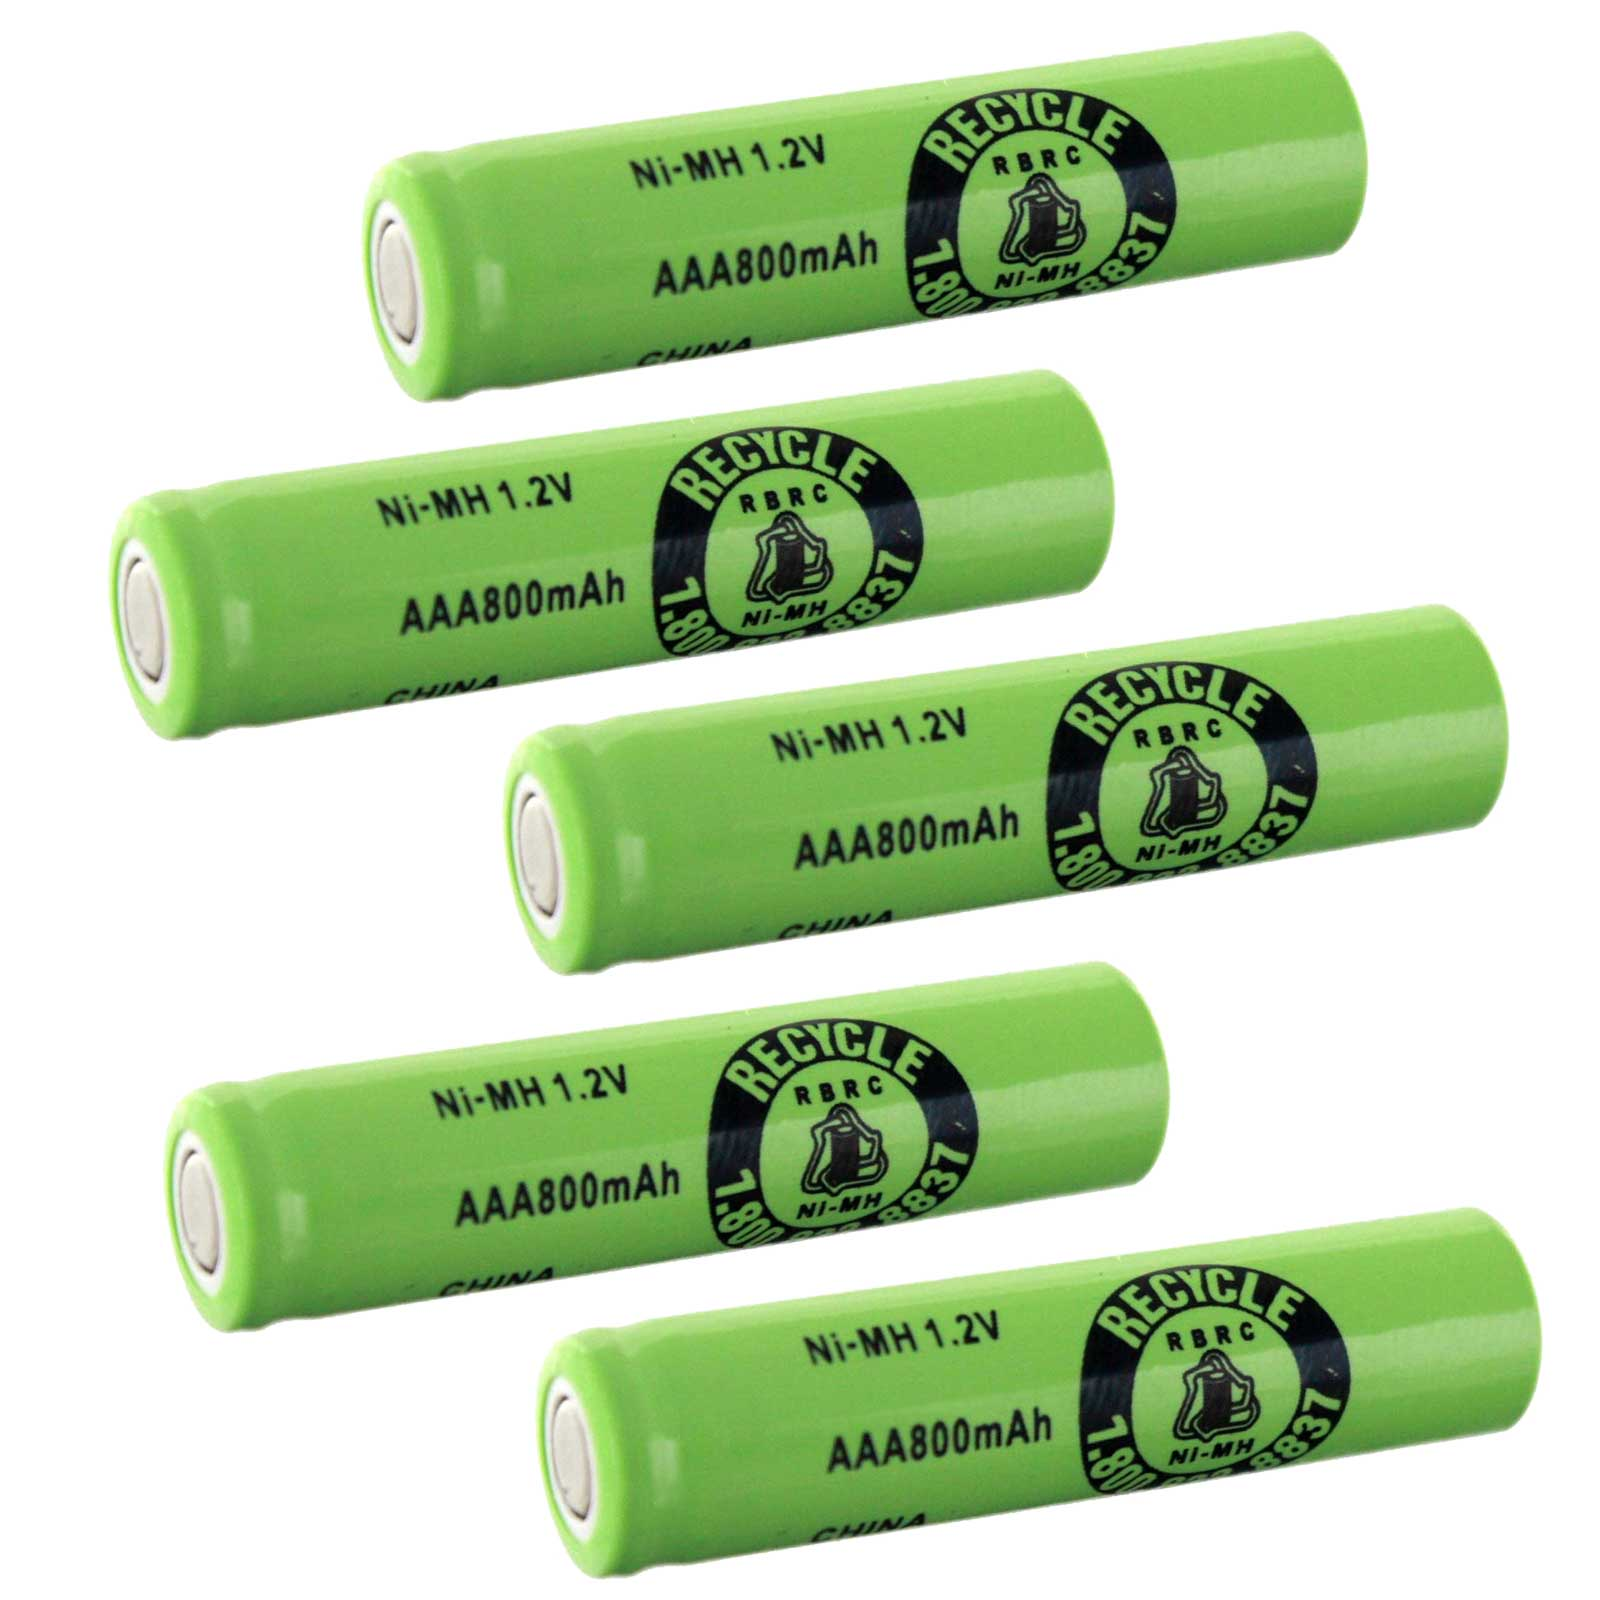 5pc aaa size 1 2v 750mah nimh rechargeable battery flat top cell fast usa ship ebay. Black Bedroom Furniture Sets. Home Design Ideas